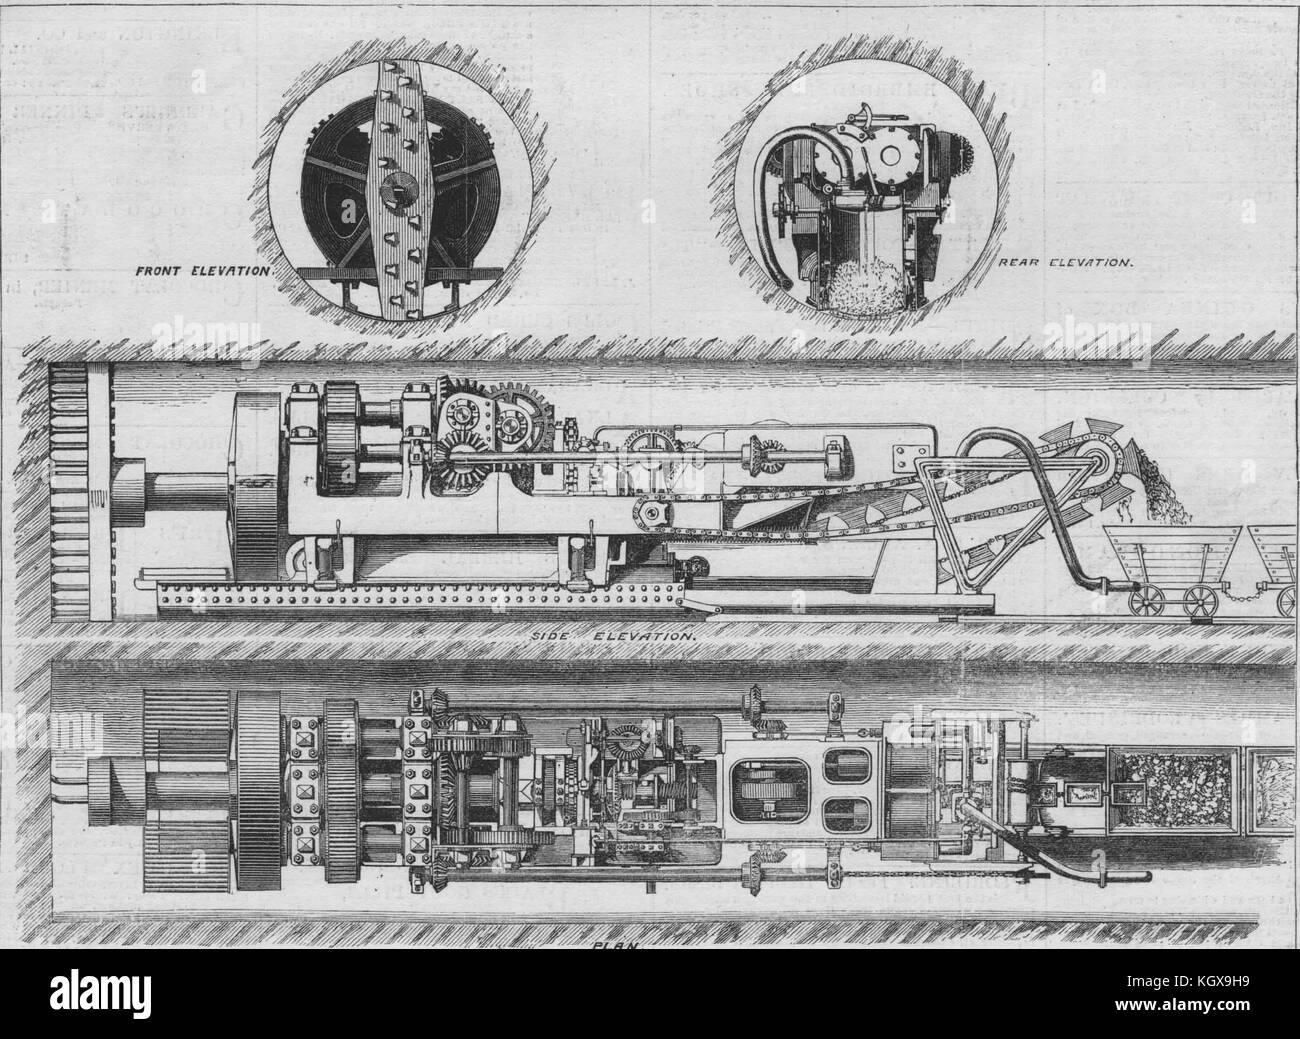 Beaumont and English's compressed air tunnelling machine. Engineering 1882. The Illustrated London News - Stock Image